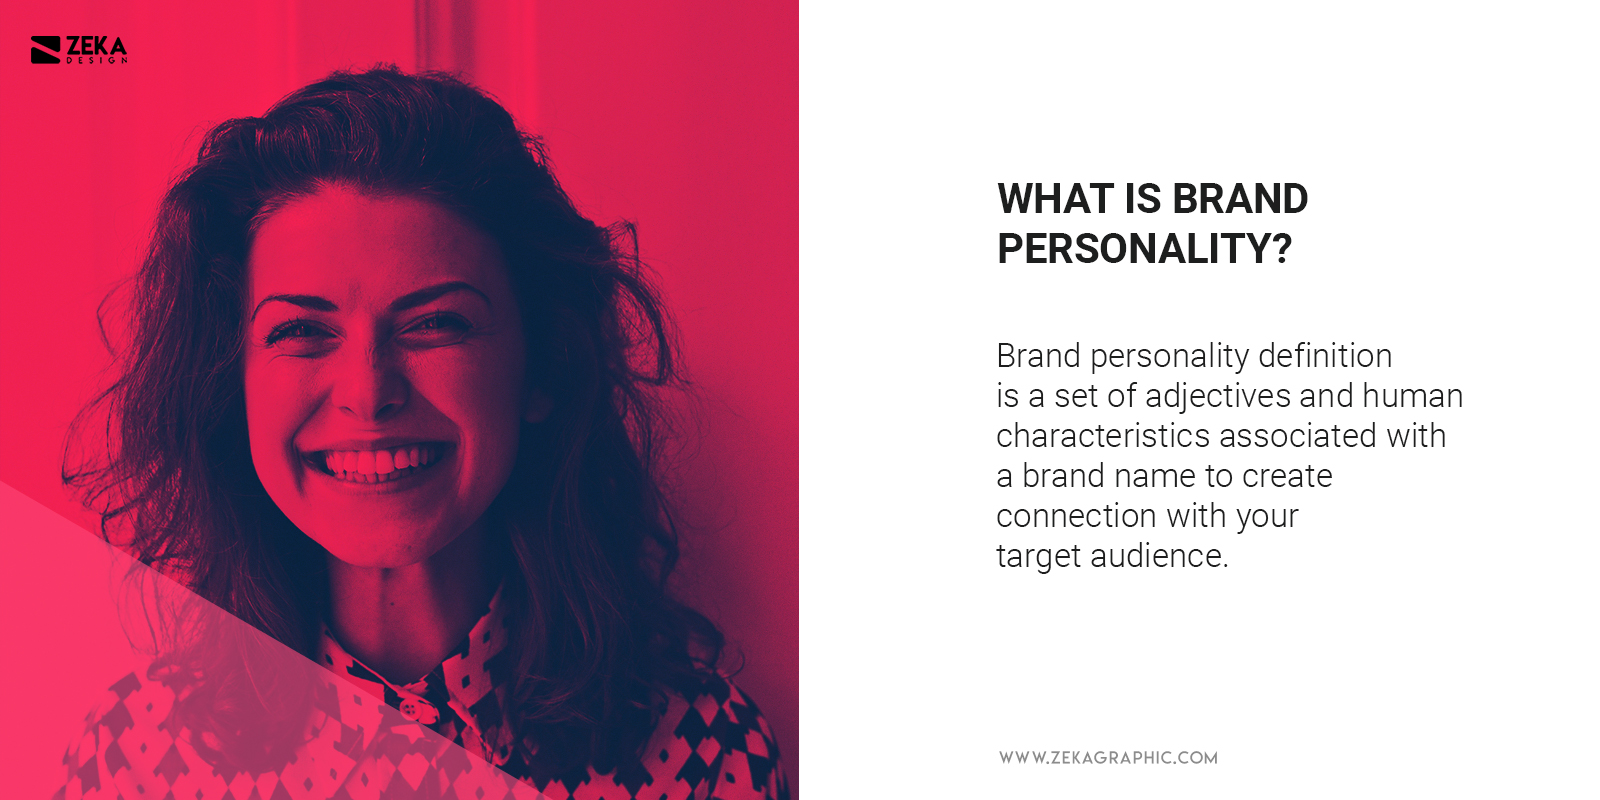 What Is Brand Personality Definition